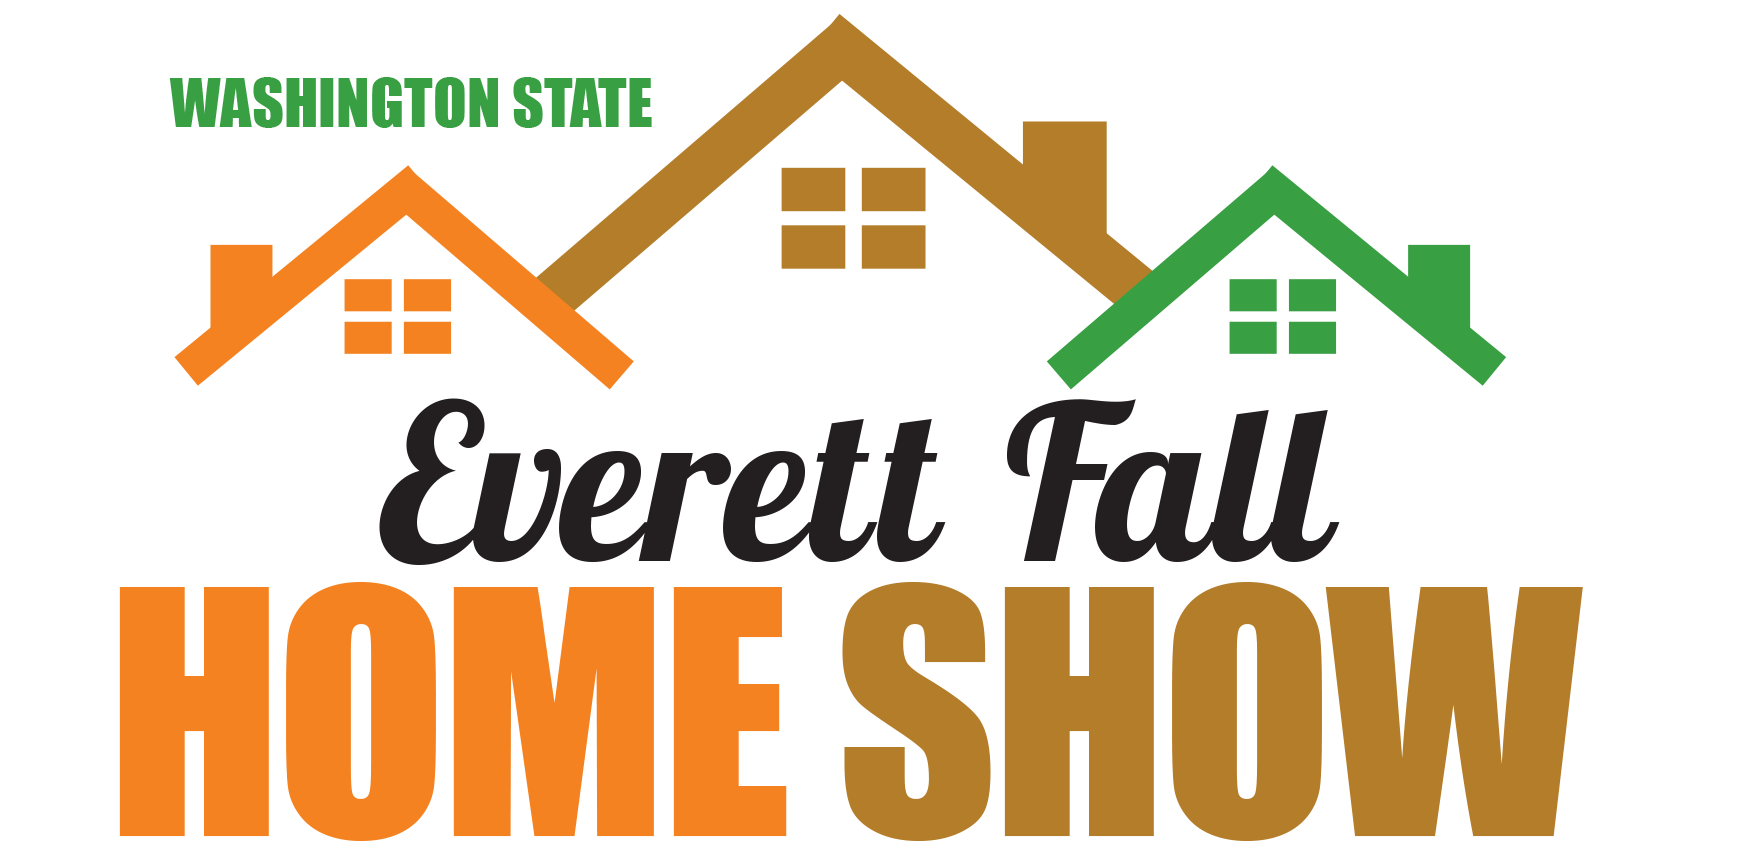 https://steenmanassociates.com/wp-content/uploads/2019/10/EverettFallHomeShow.png